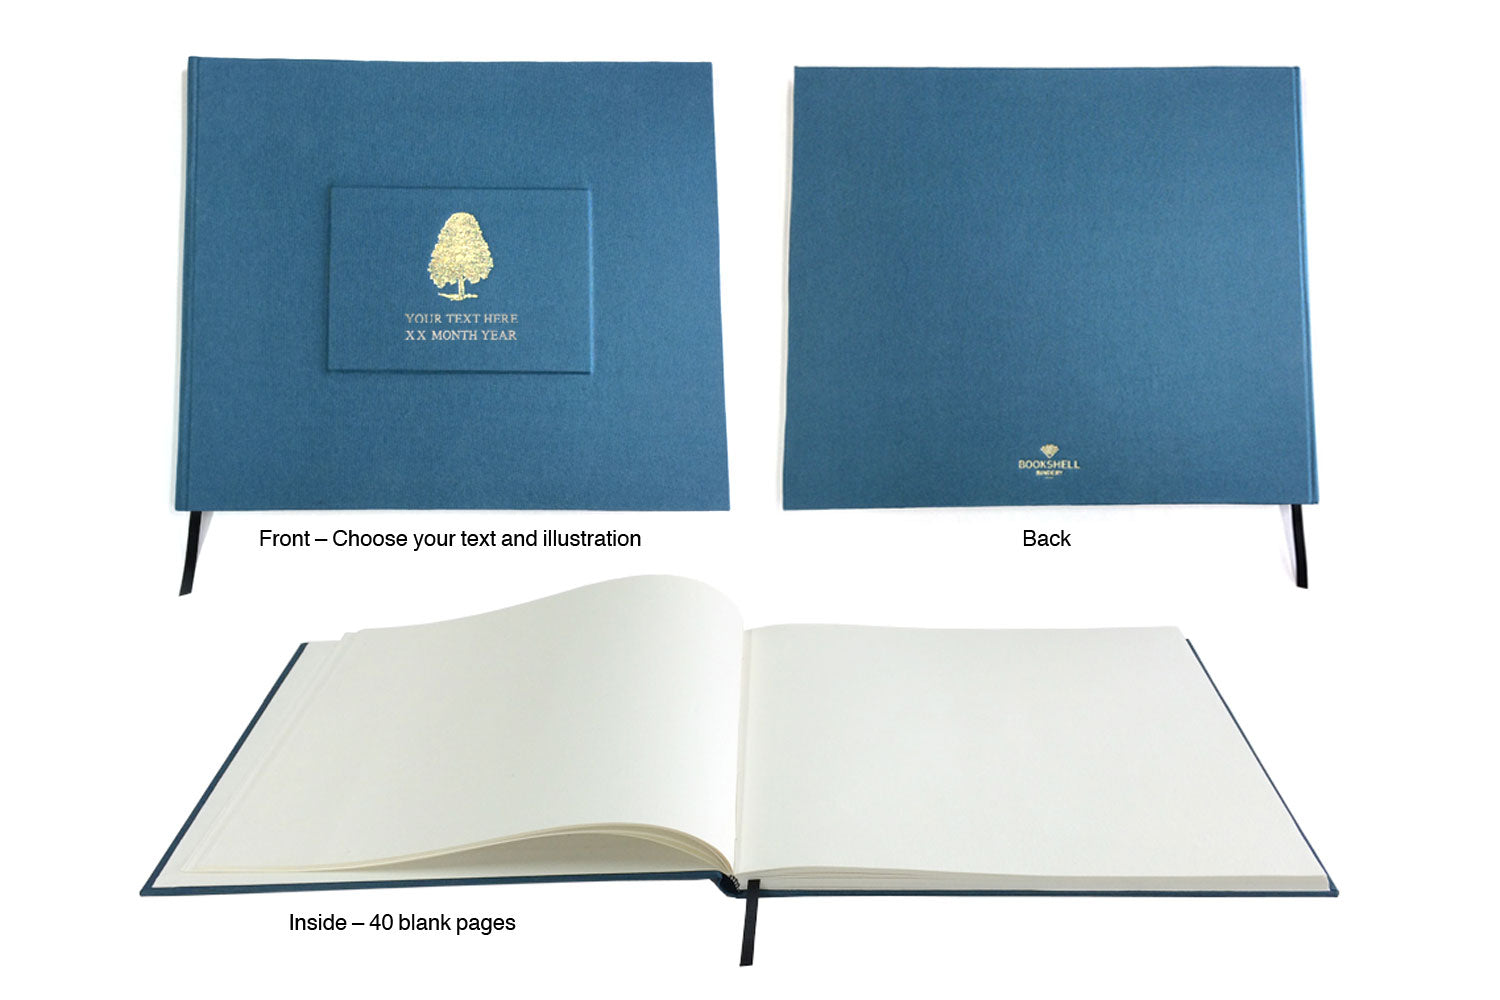 wedding guest book from Bookshell bindery, hand bound in blue book cloth with gold foil embossing, tree cover picture